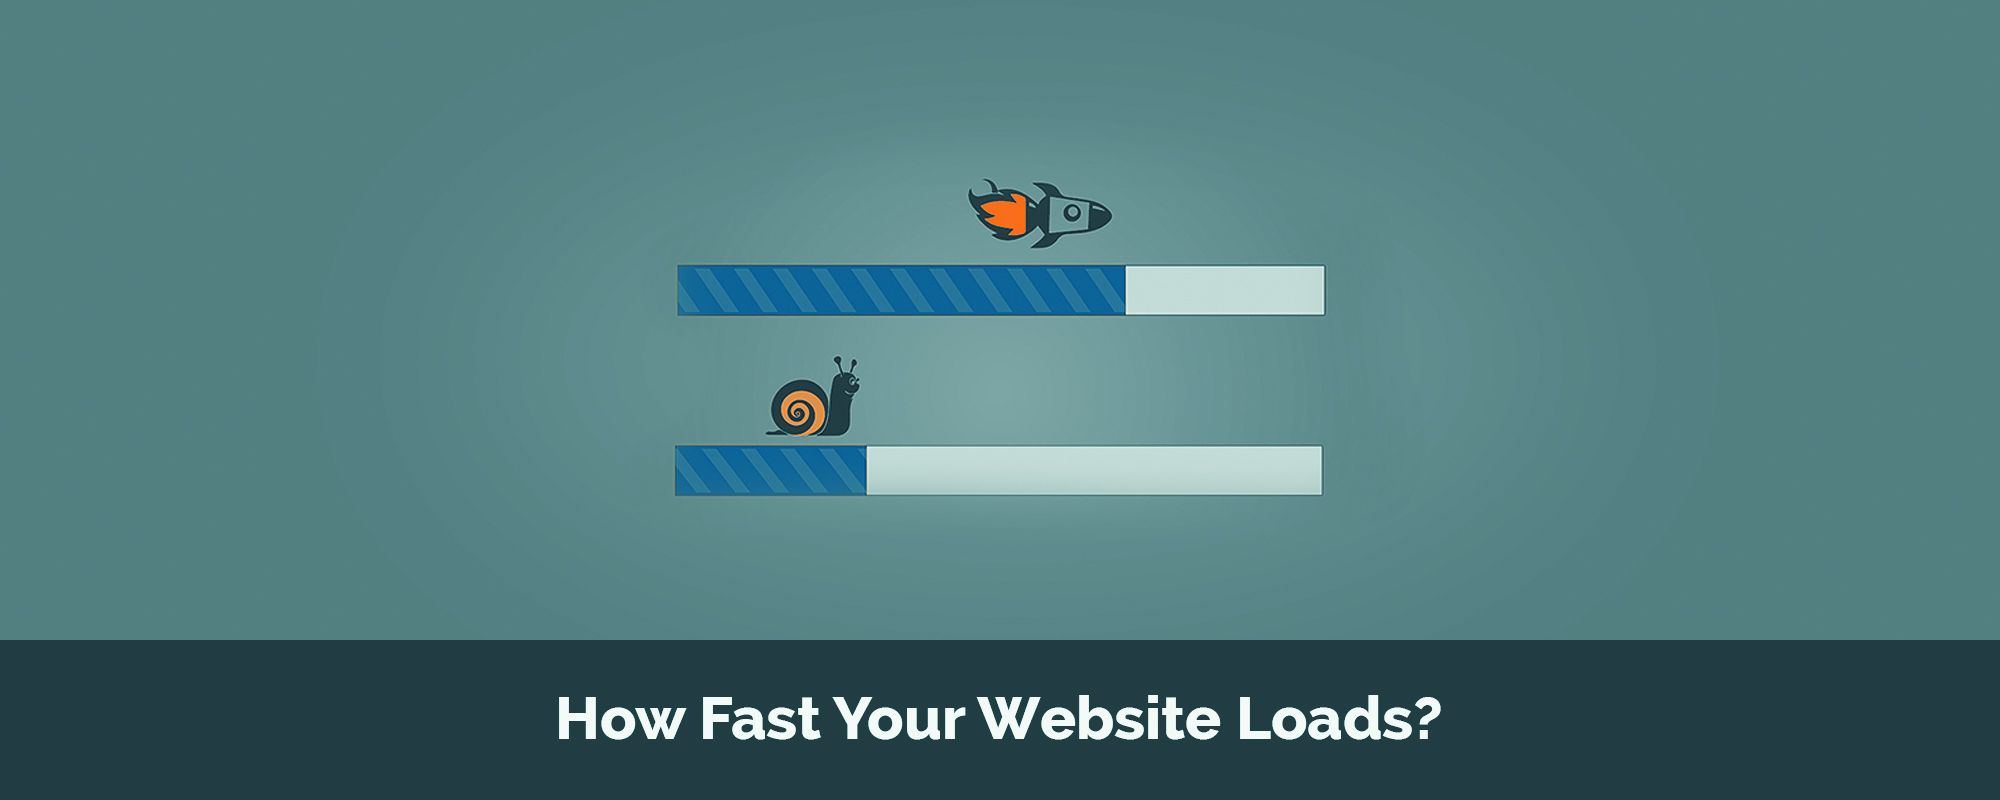 How to Make My Website Load Faster? Try These Easy Steps!